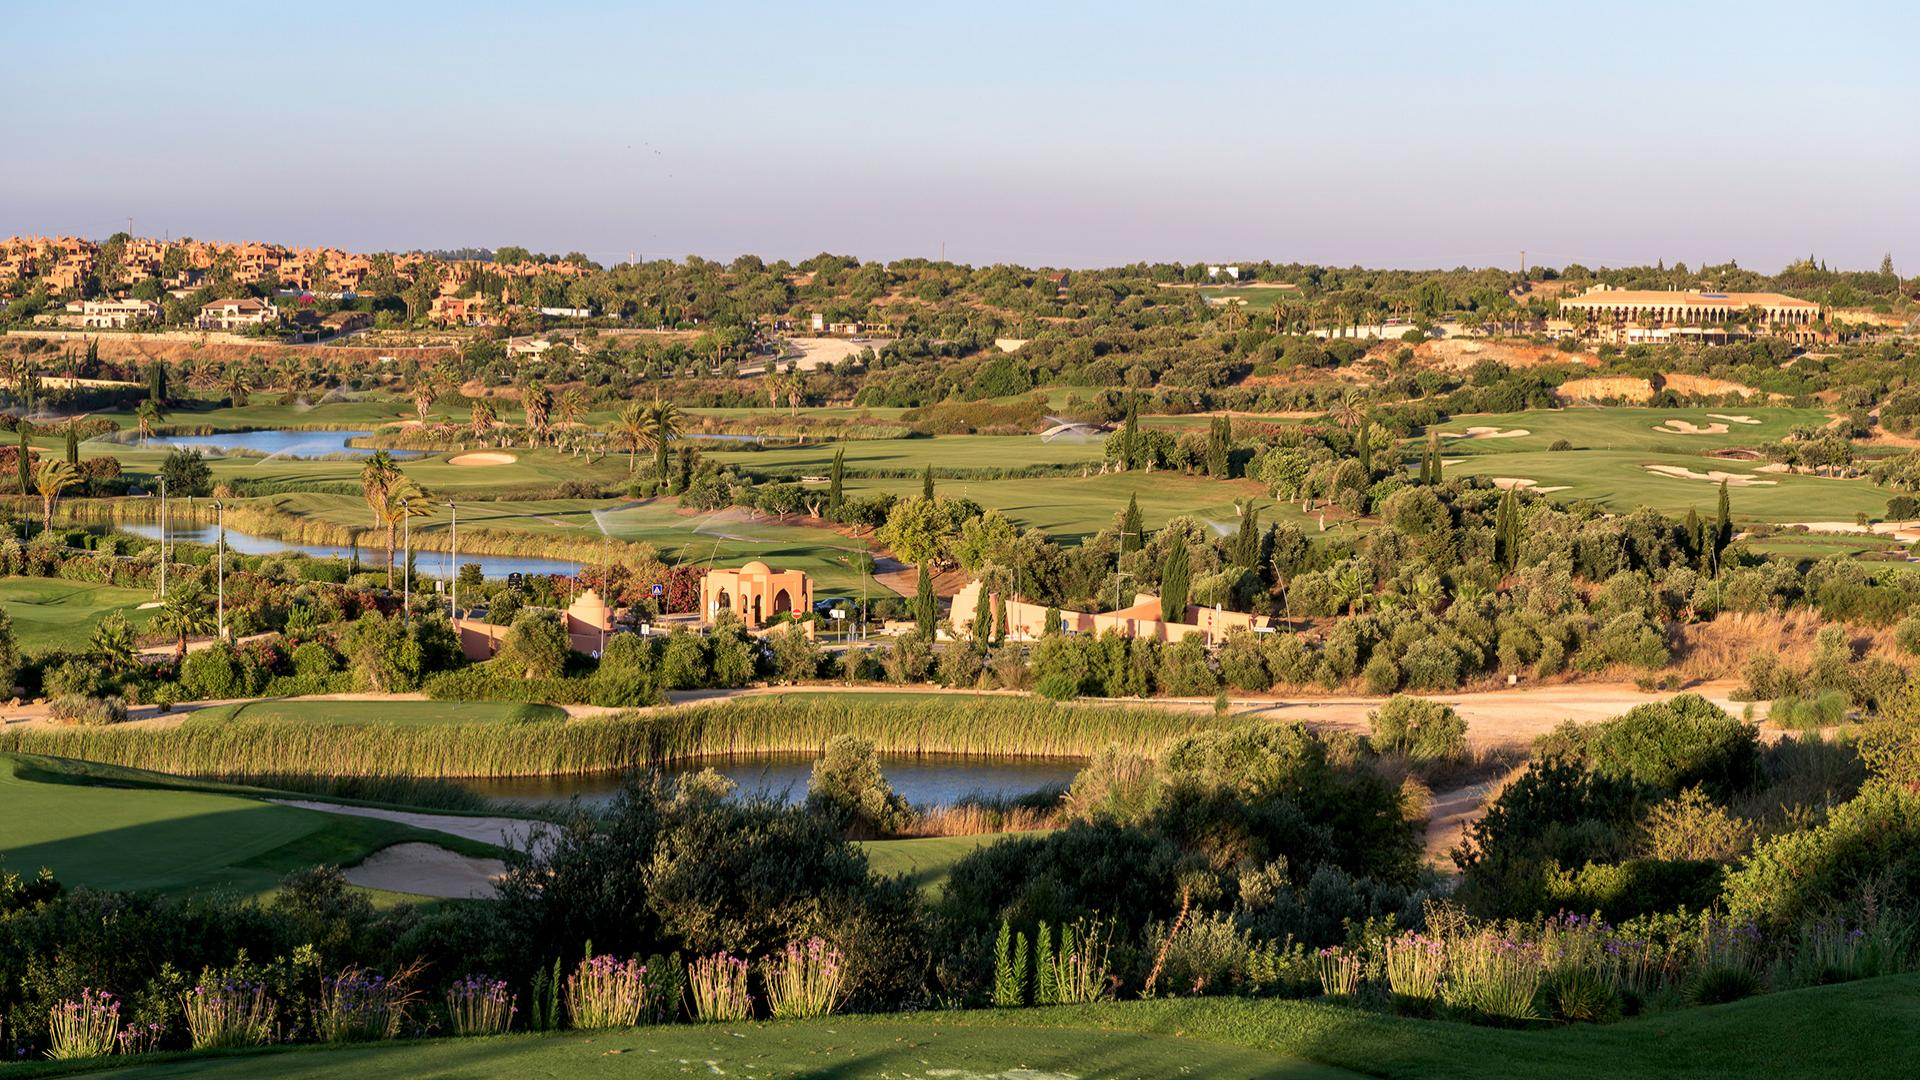 Amendoeira Golf Resort - an award winning golf resort